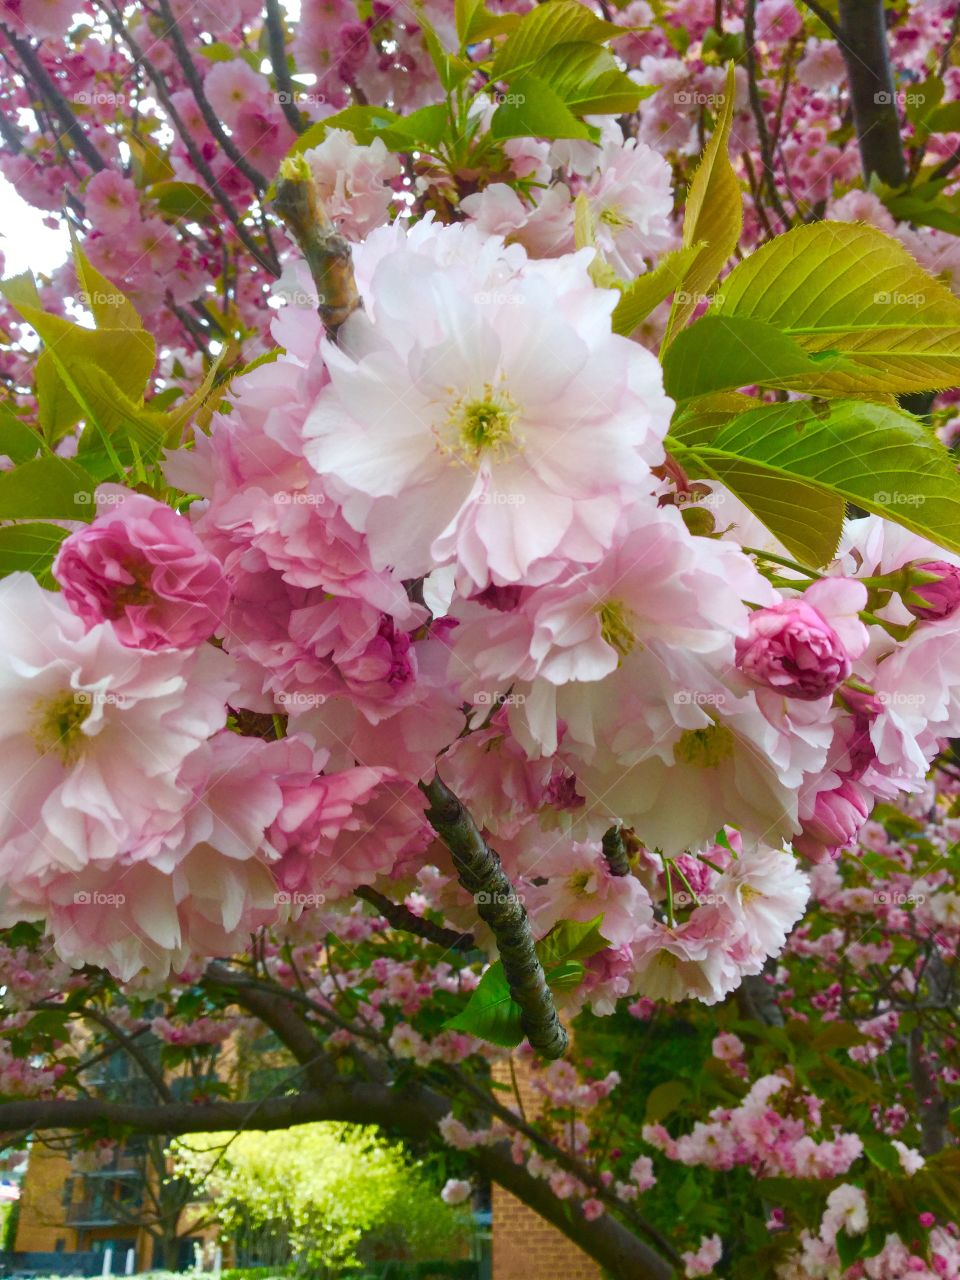 Blooming Cherry blossoms in Virginia